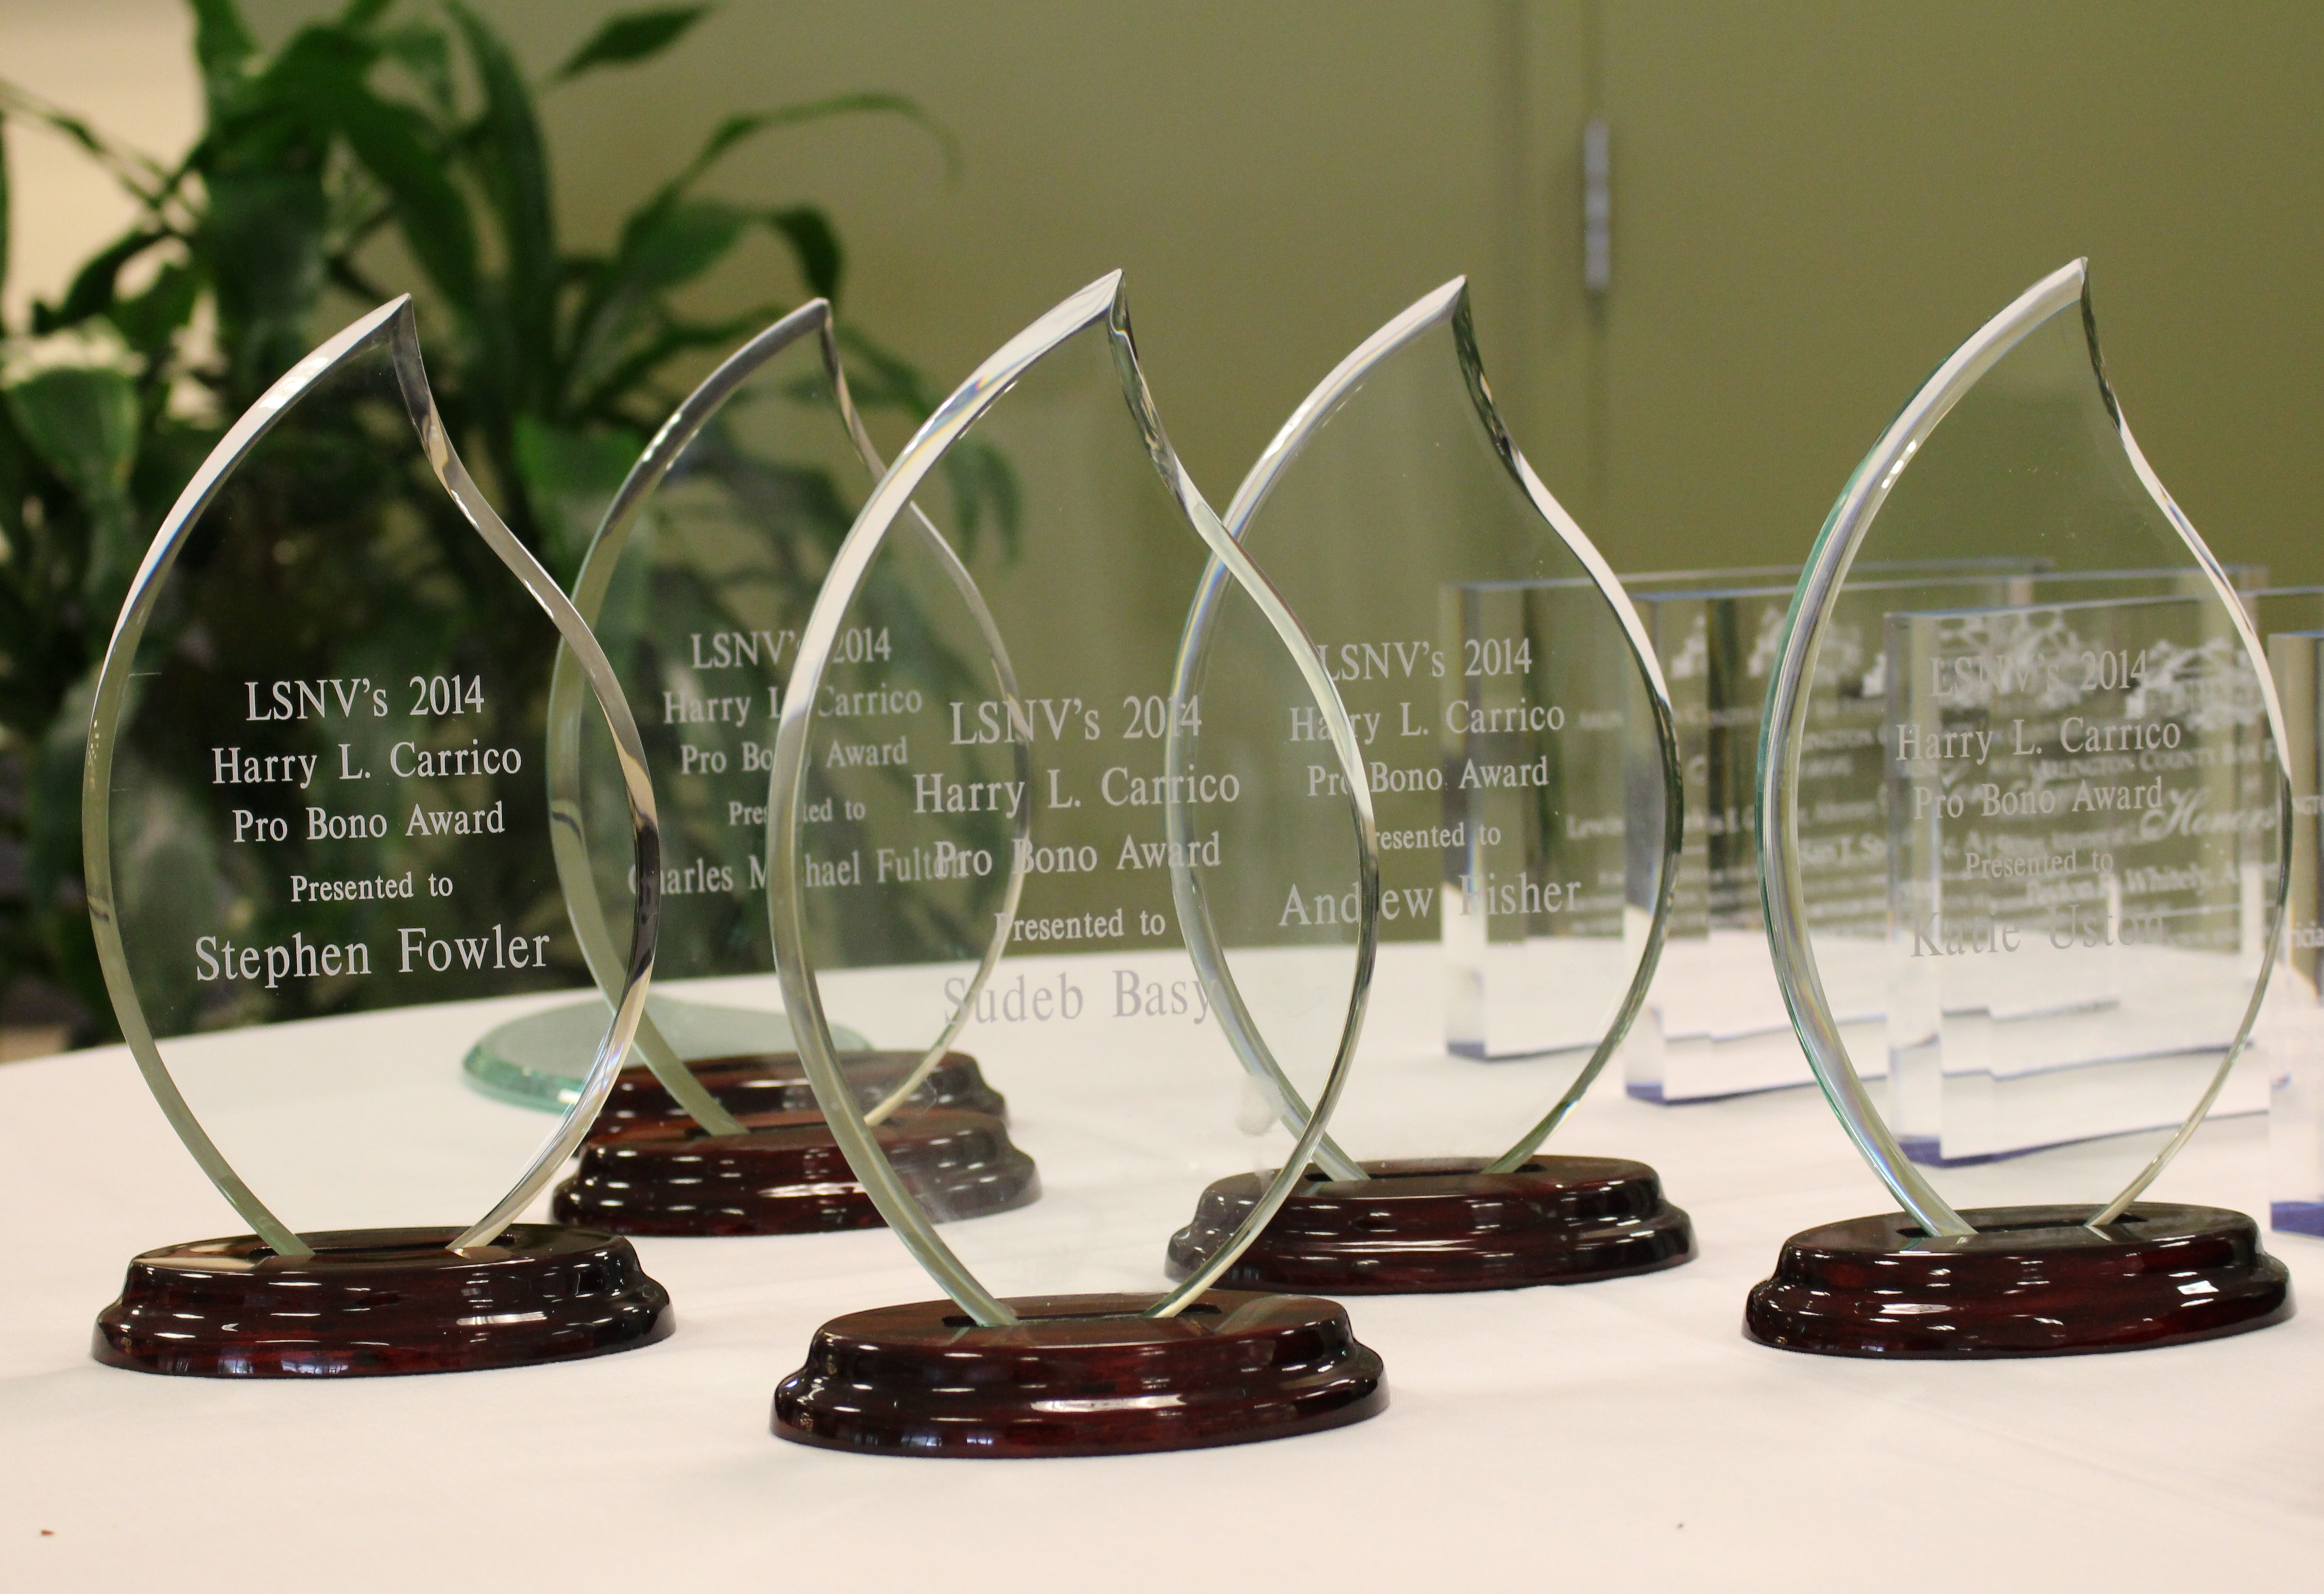 Pro Bono Awards on a Table